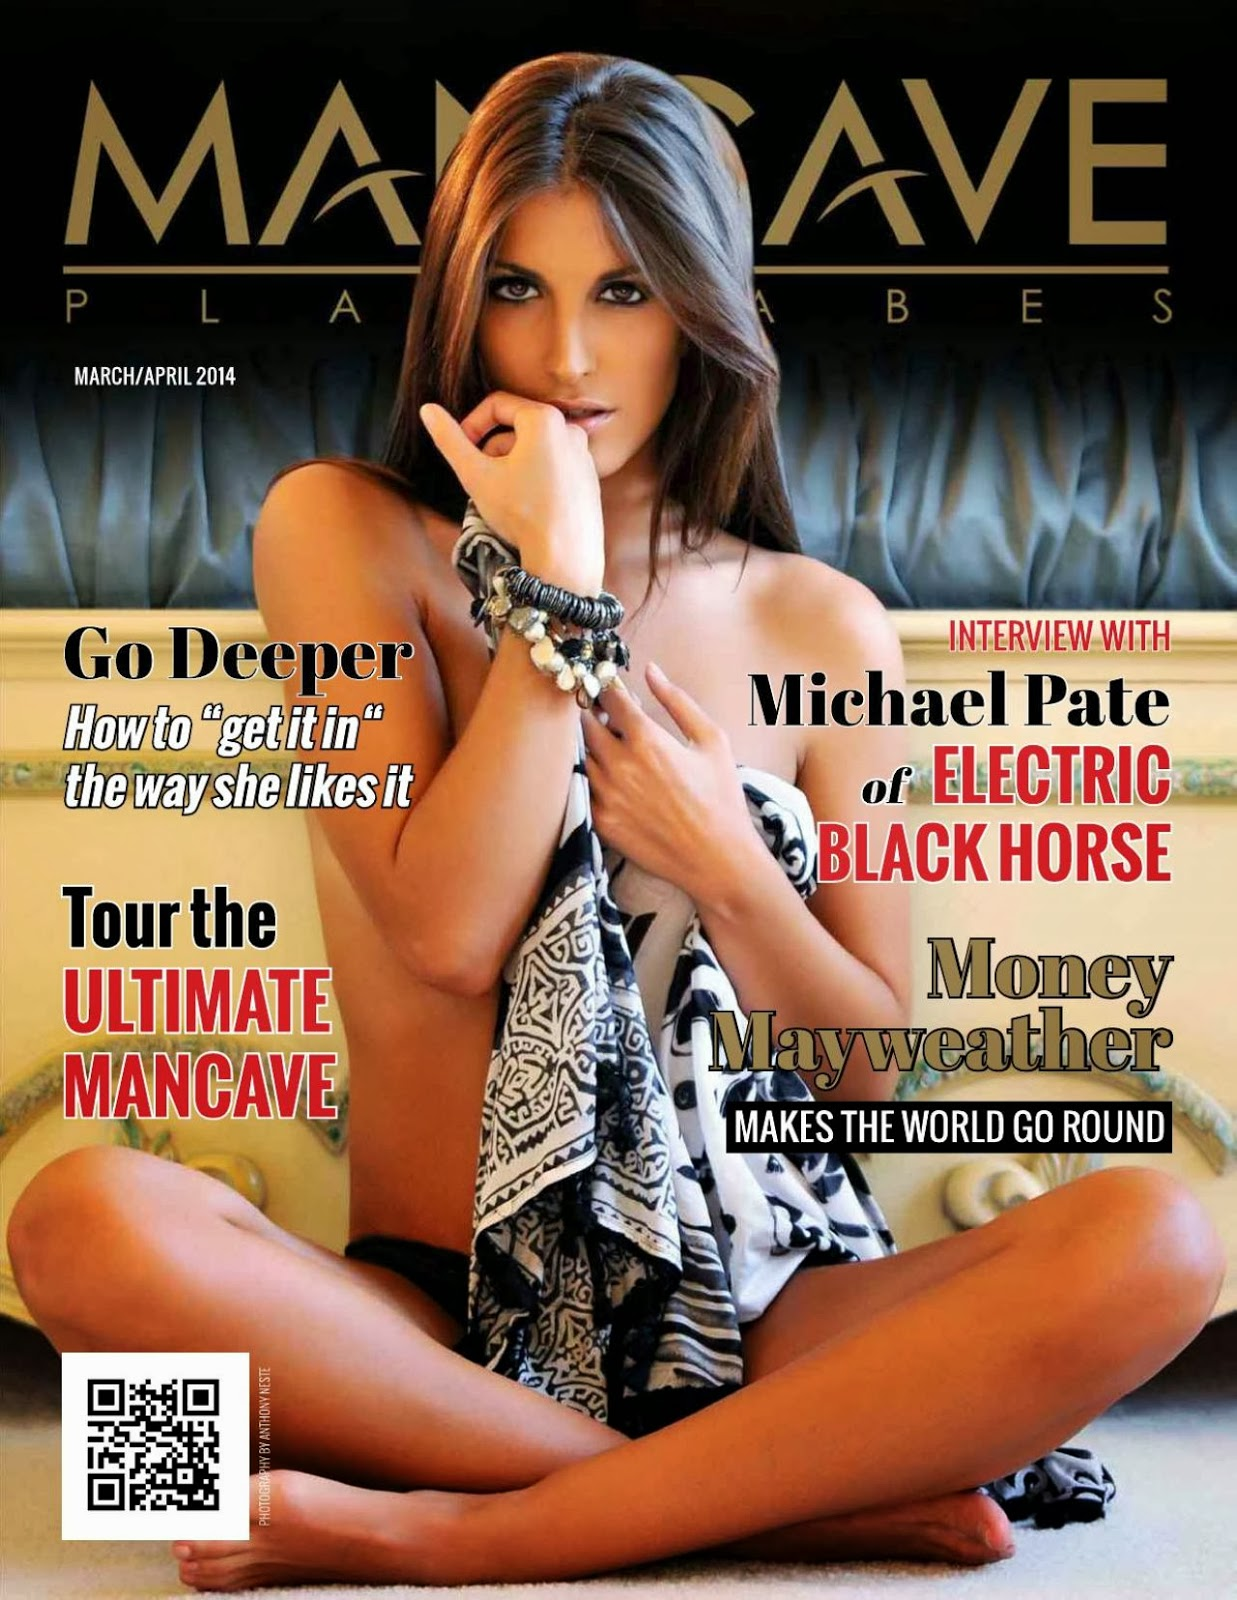 Elena Pappas HQ Pictures Mancave Playbabes Magazine Photoshoot March / April 2014